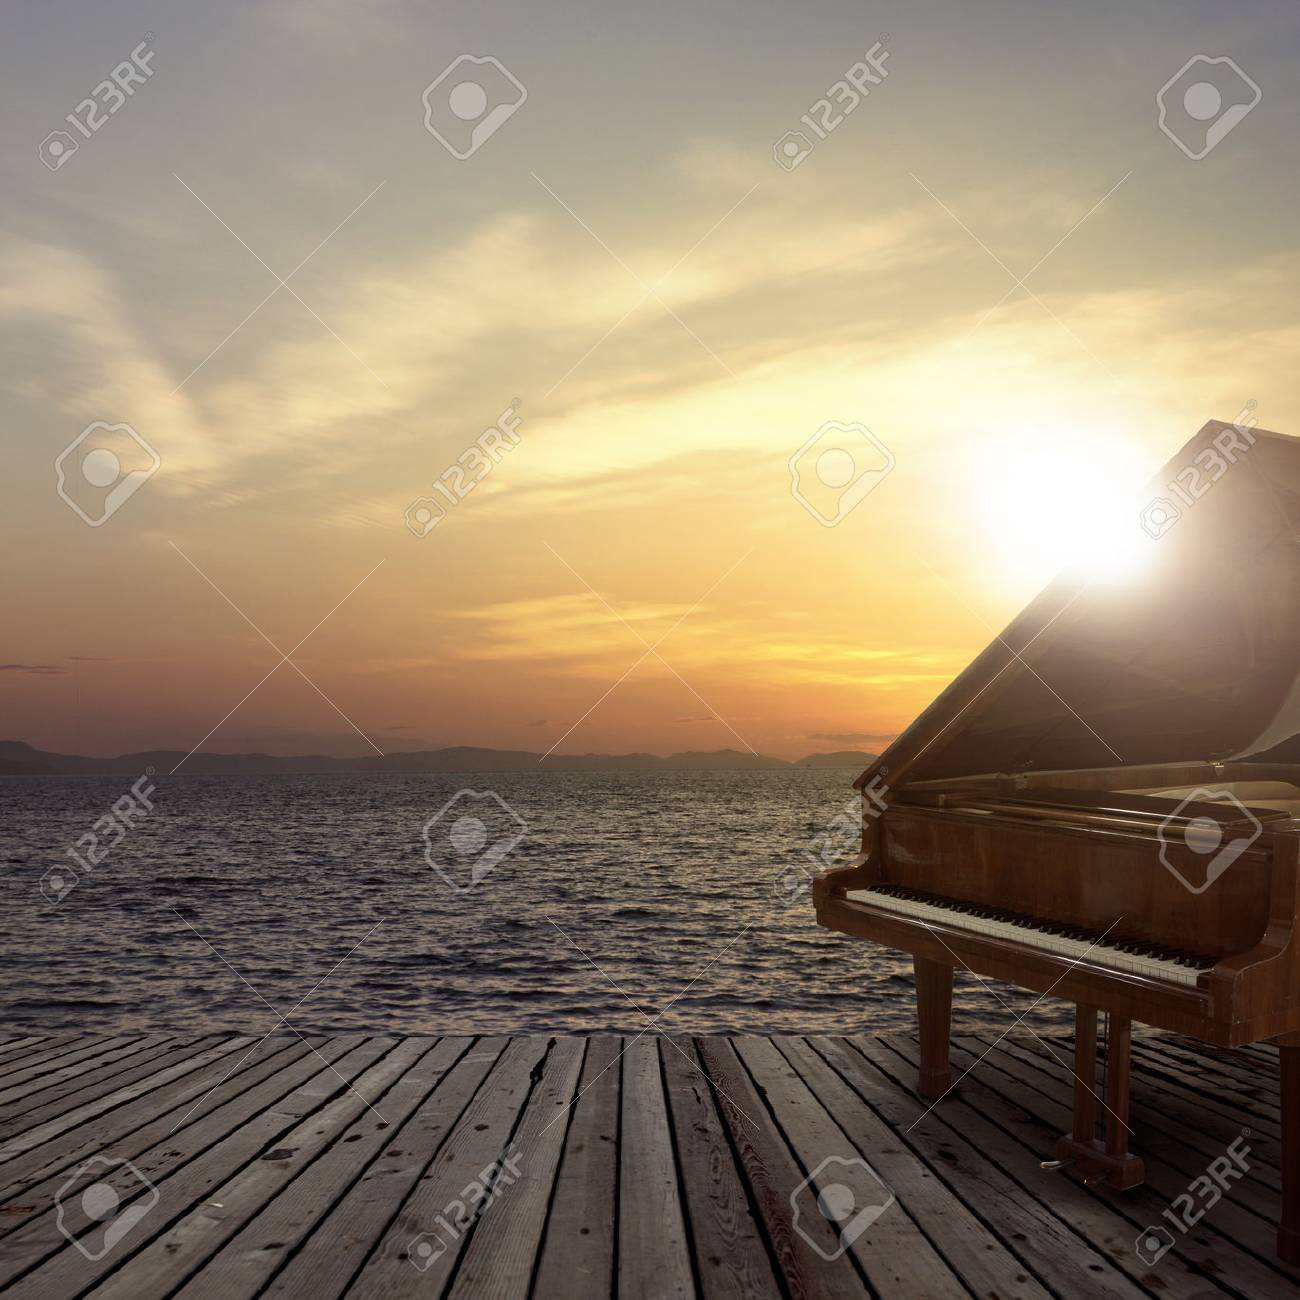 Piano outside shot at sea side during sunset - 64319995